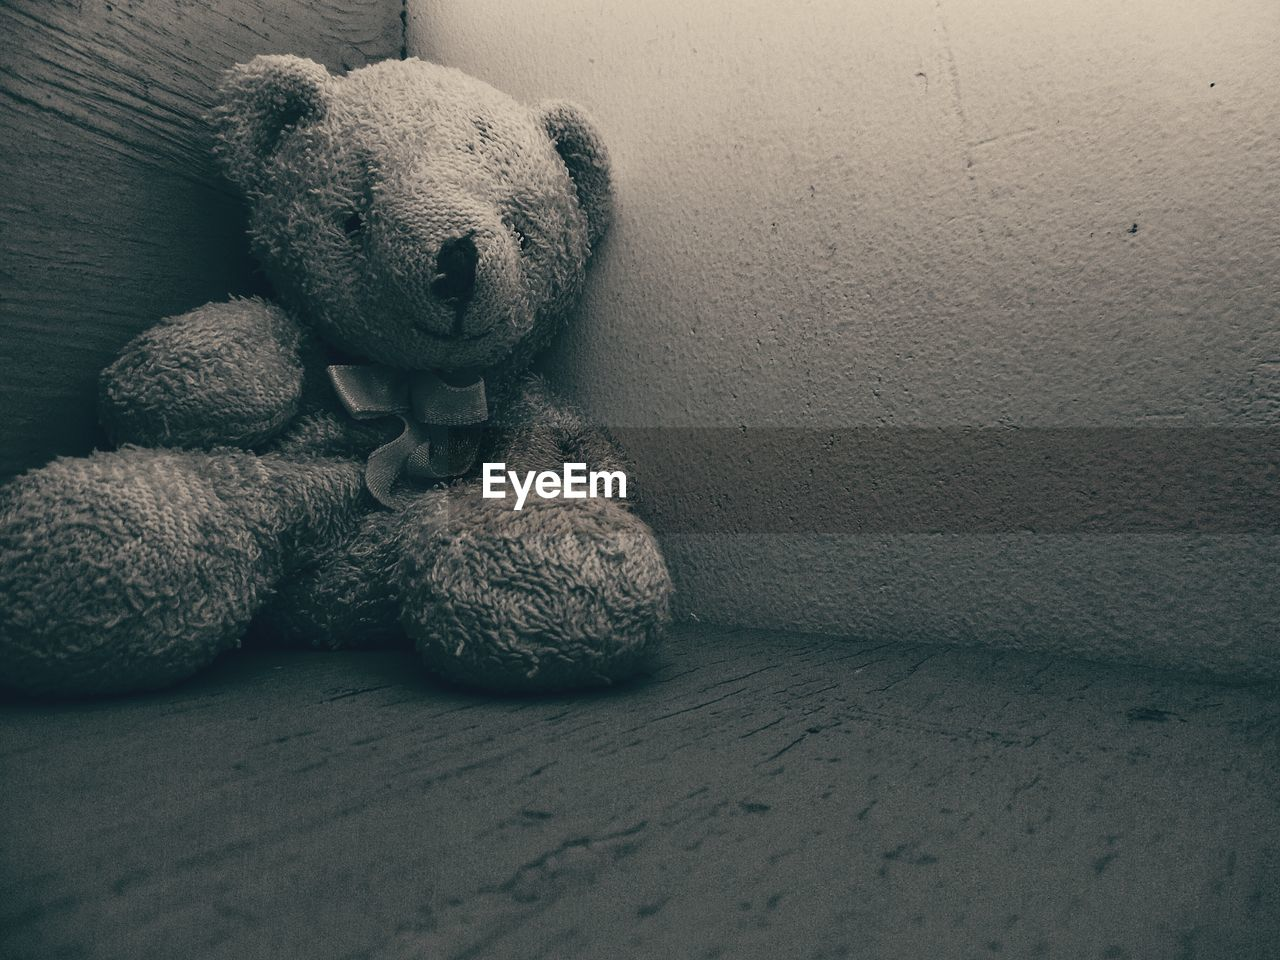 teddy bear, stuffed toy, toy, animal representation, indoors, no people, childhood, close-up, day